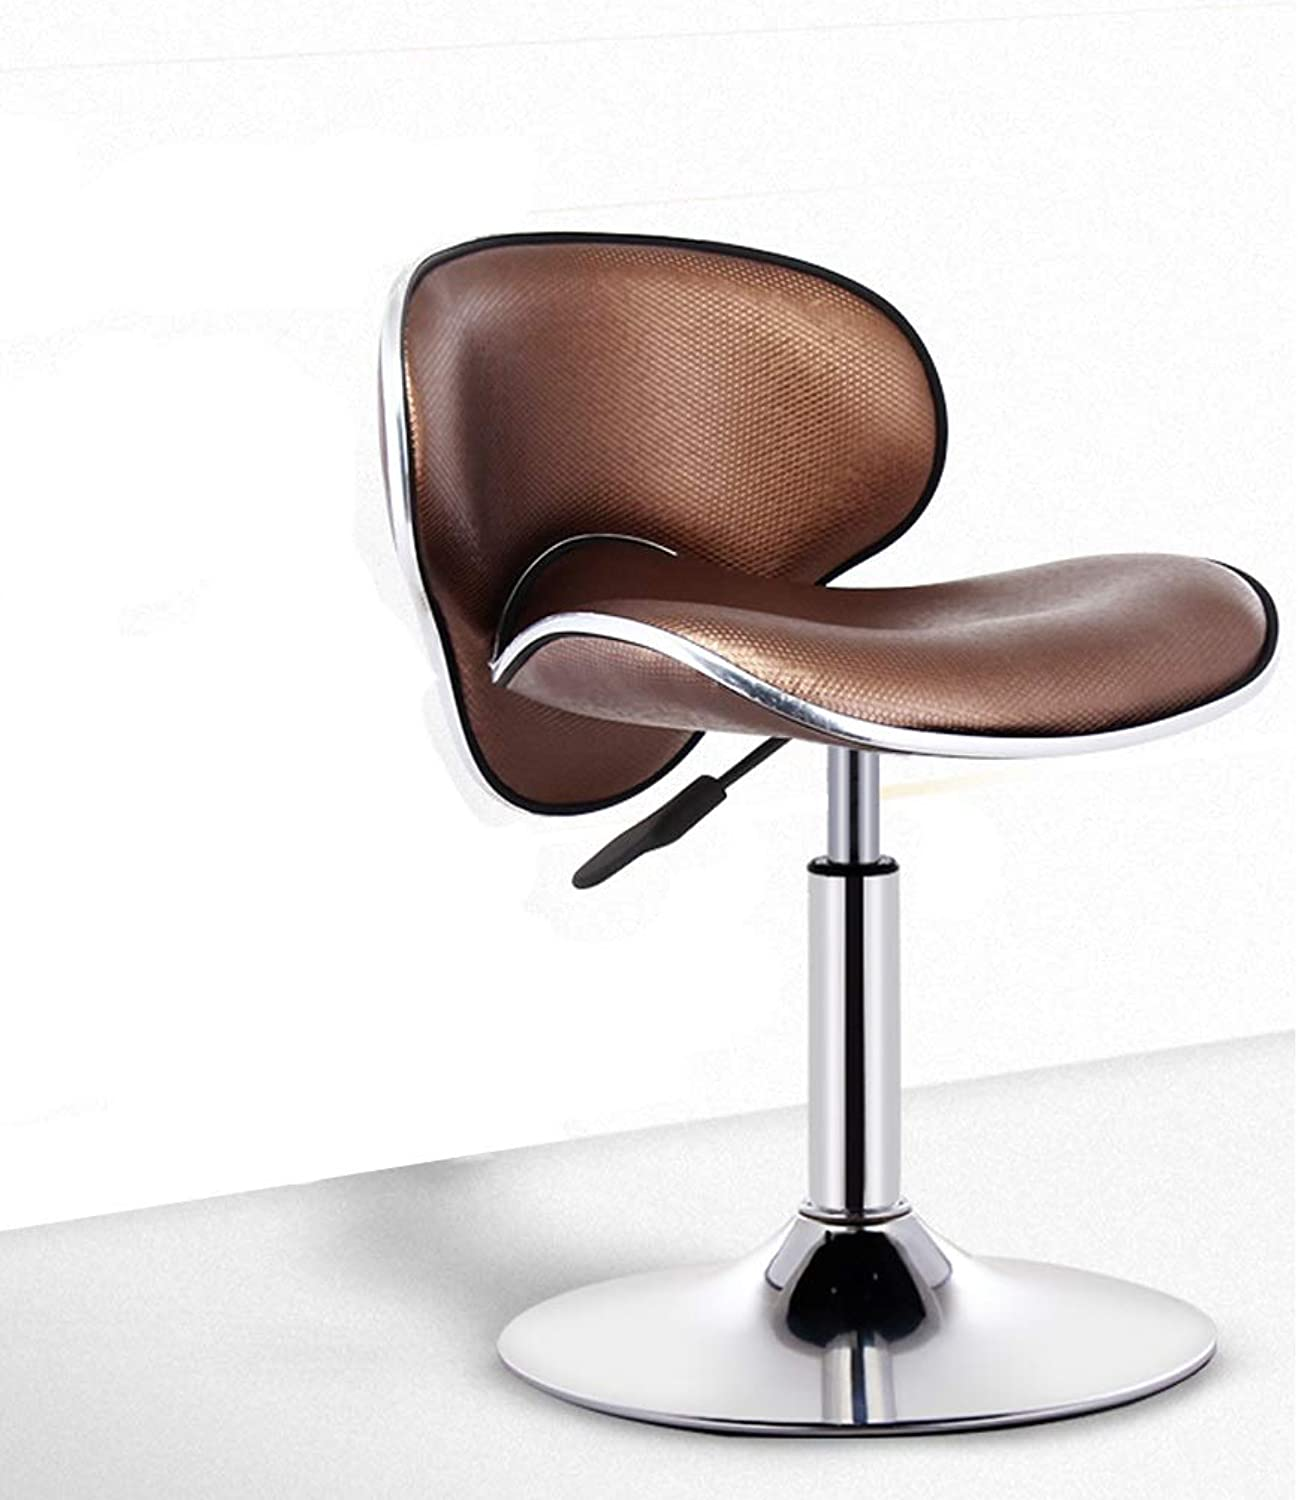 Cafe Bar Stool Chair Lift Modern Simple Counter Barstool Kitchen Leather Seat Front Desk Home Decoration 0522A (color   Brown)